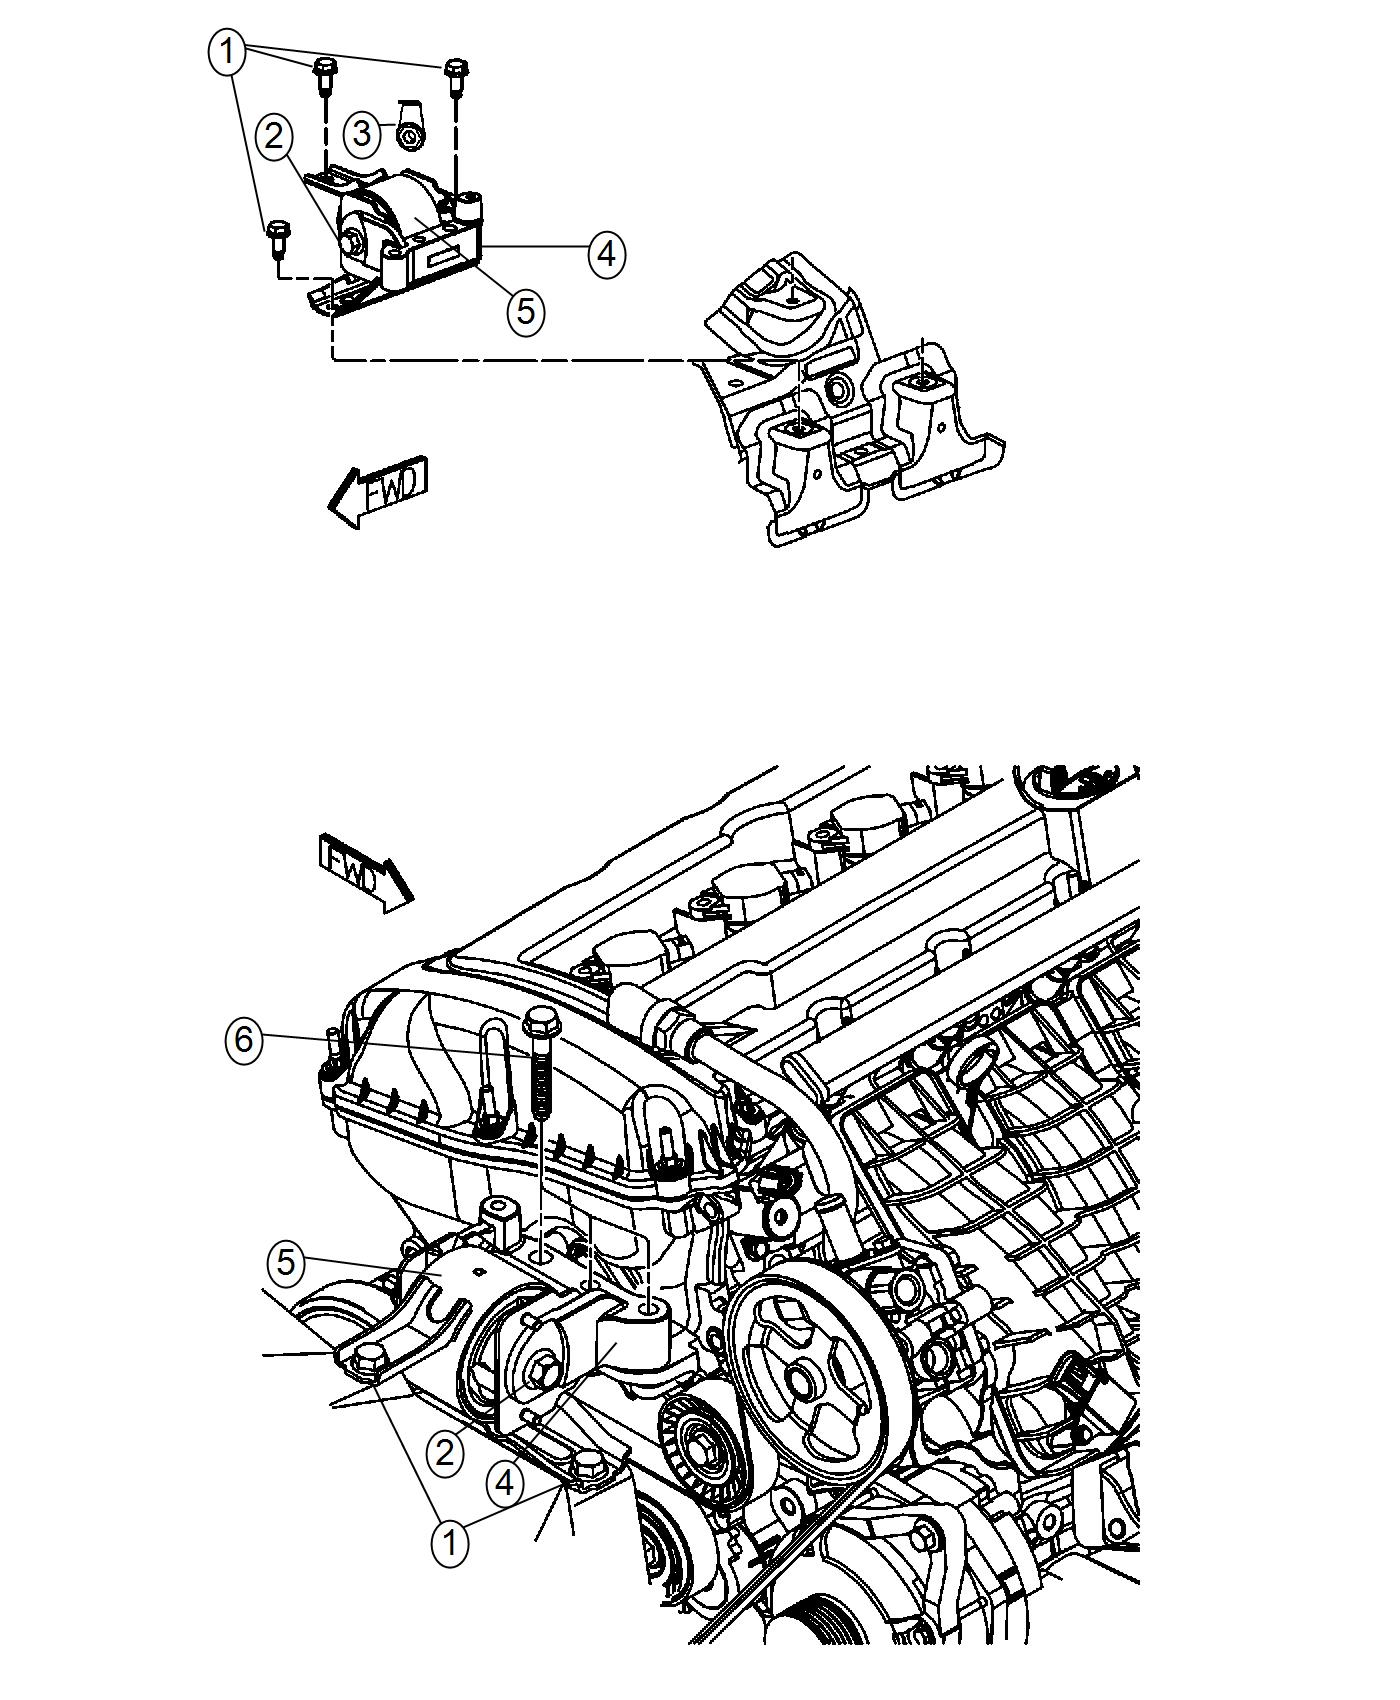 Jeep Compass Used For Bolt And Washer Hex Head